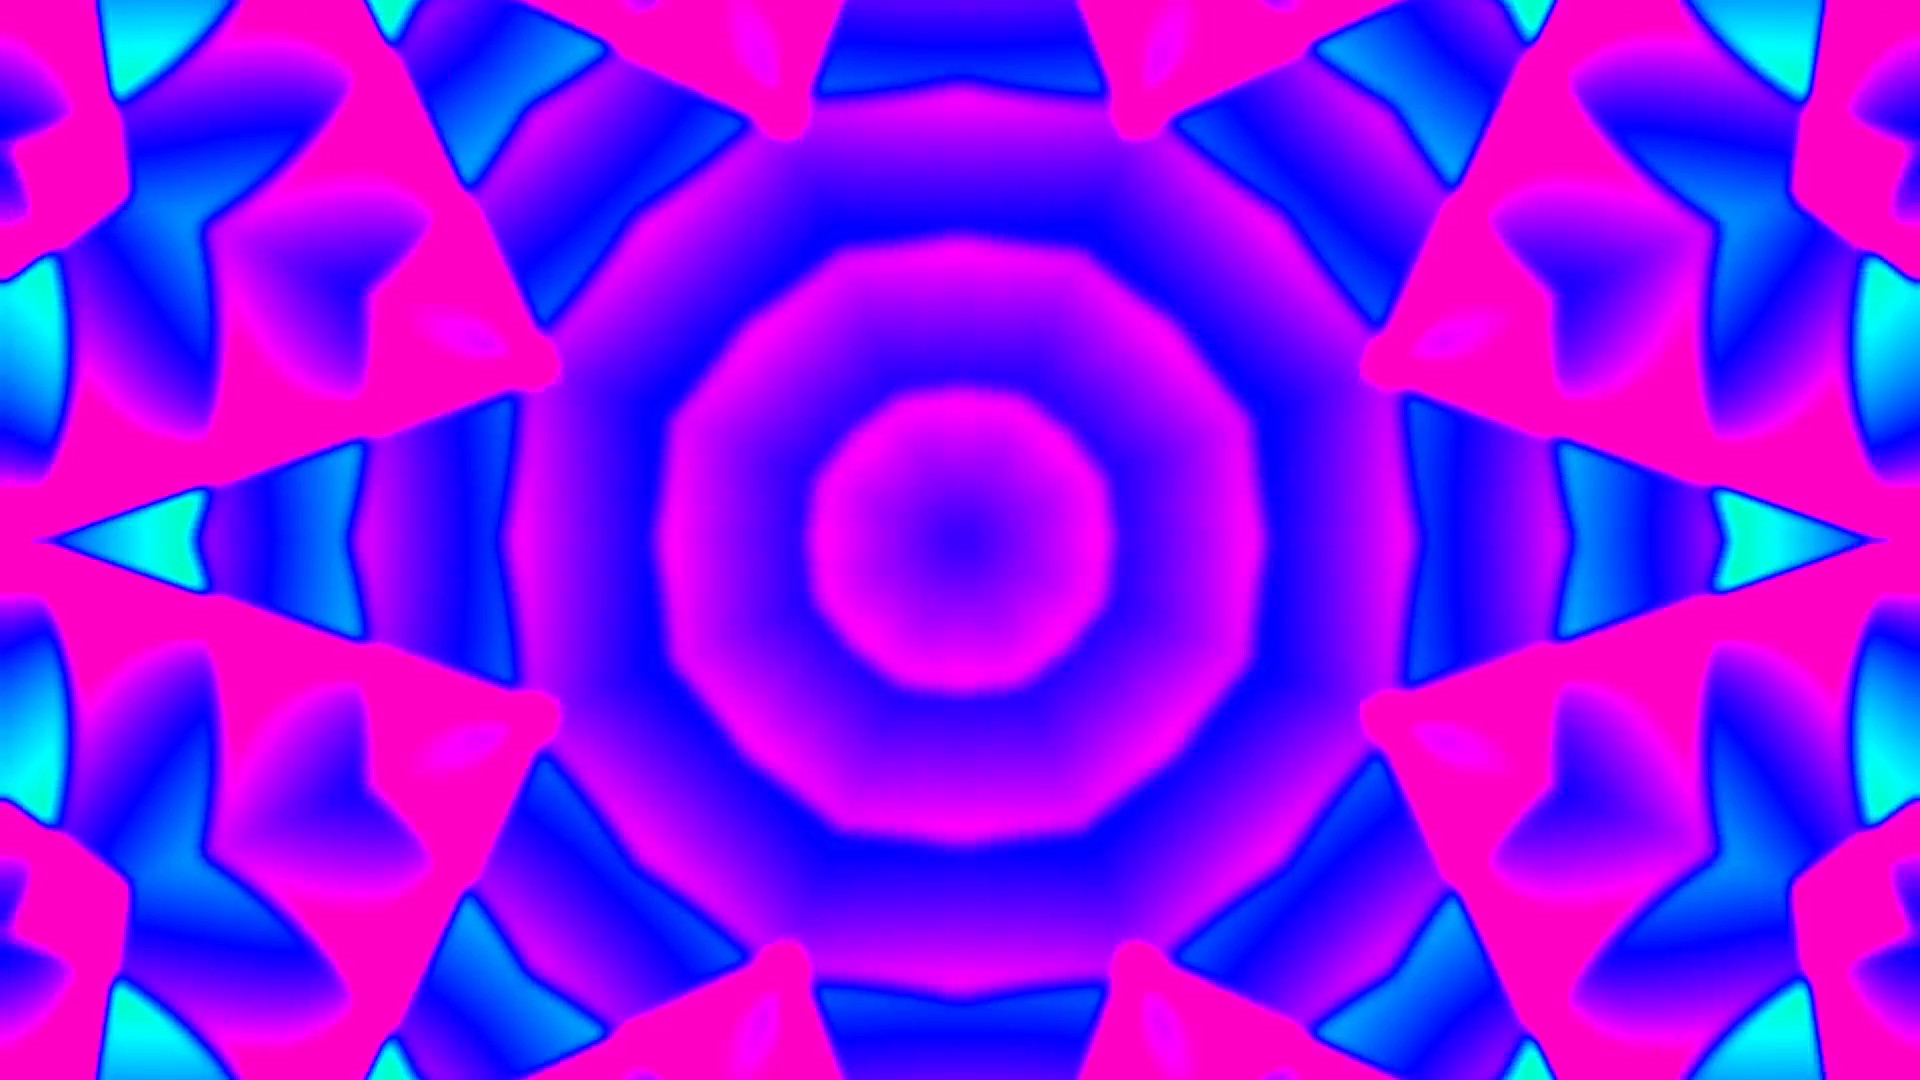 Trippy Backgrounds 74 Images